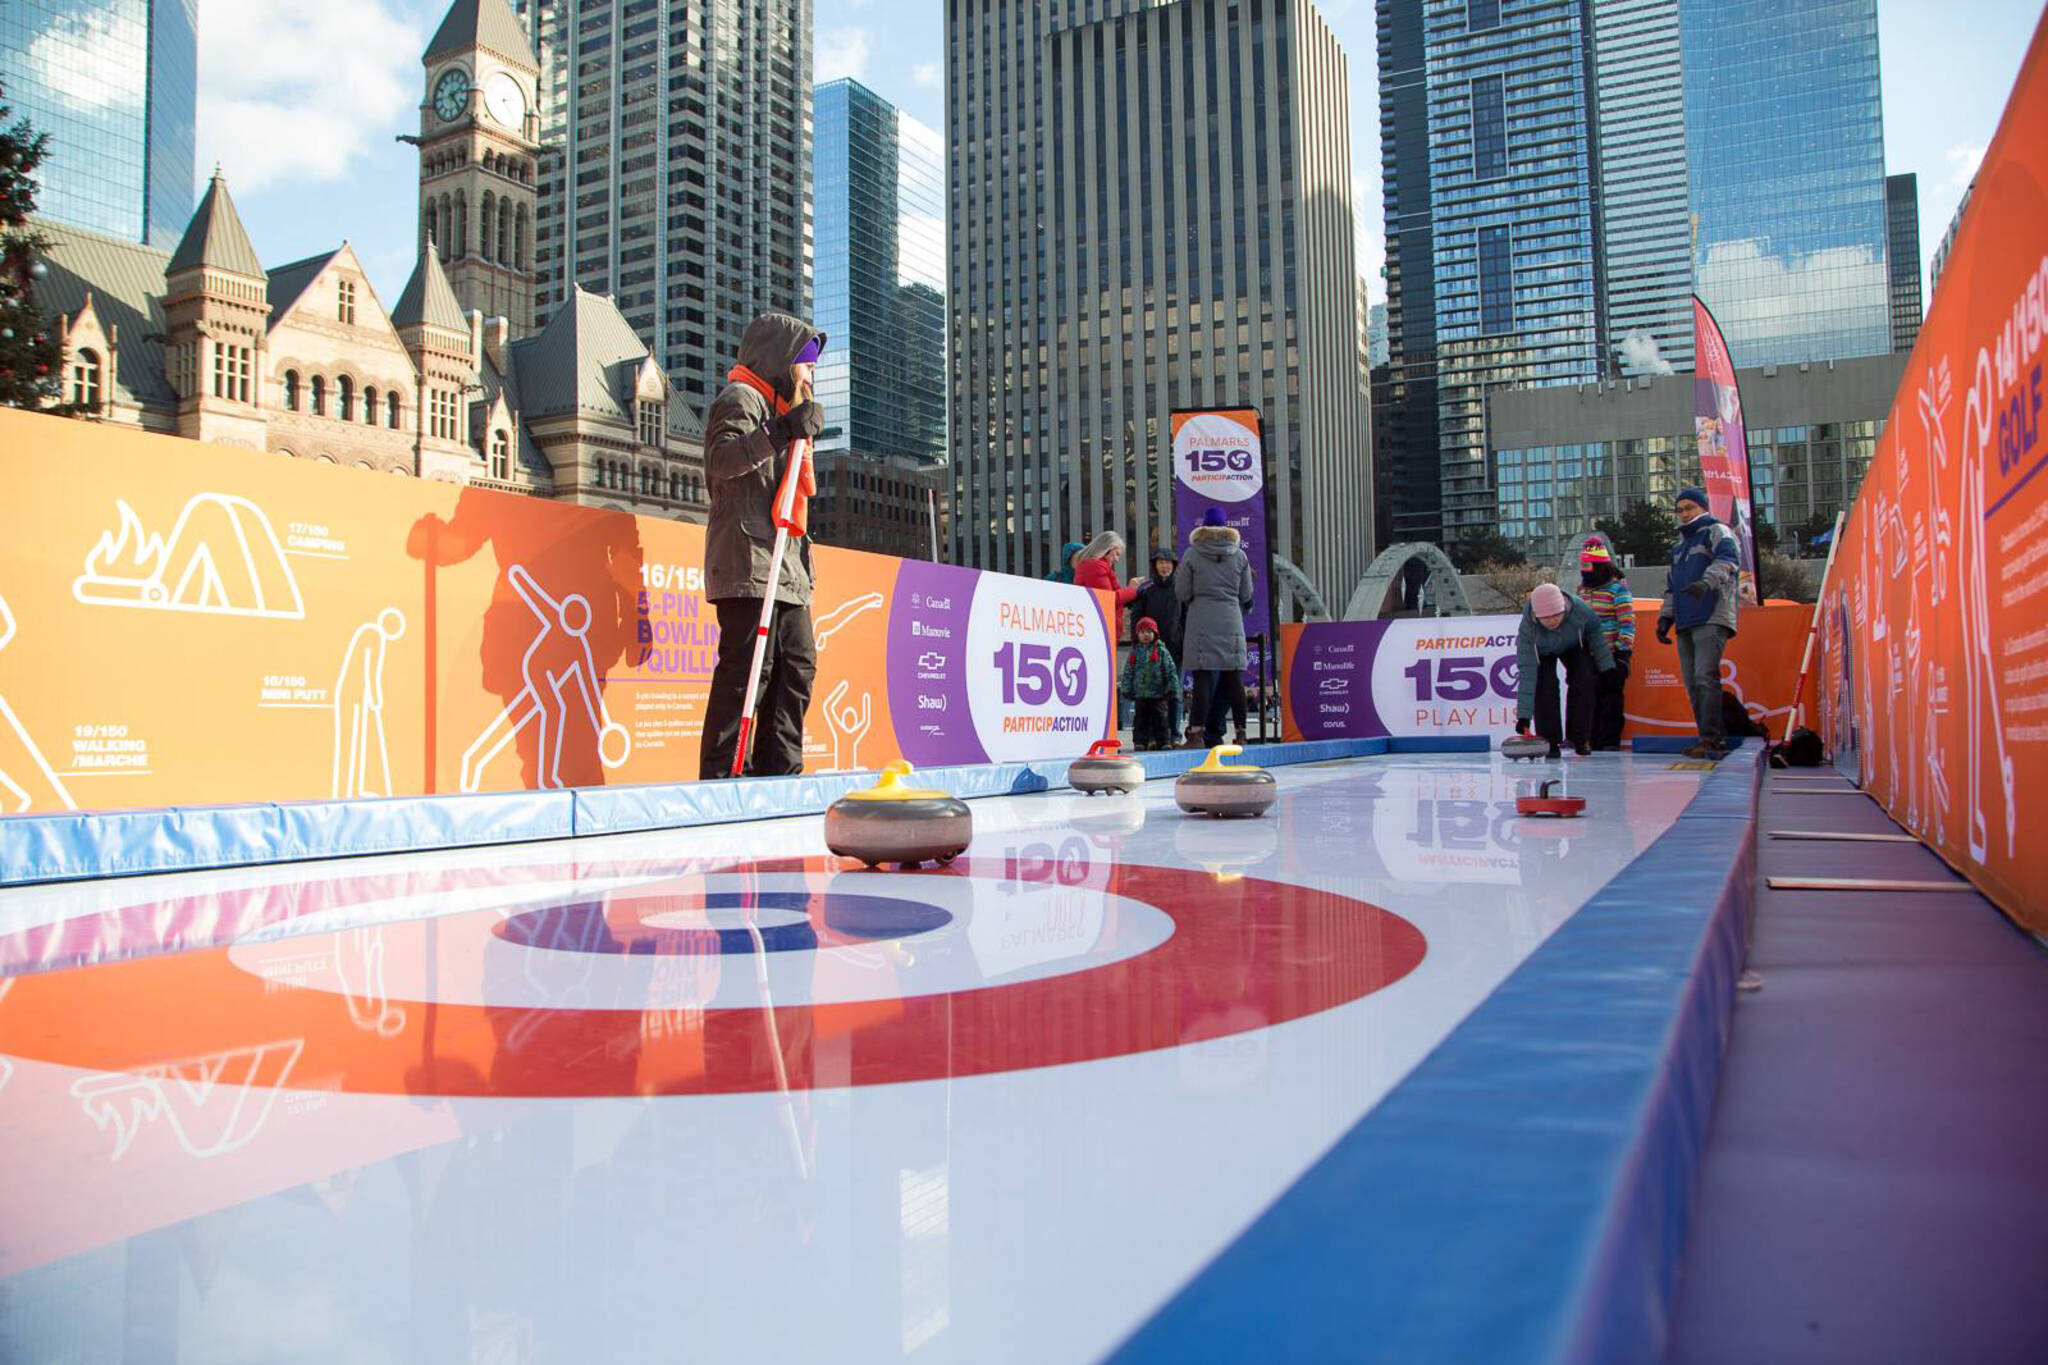 curling at Nathan Phillips Square